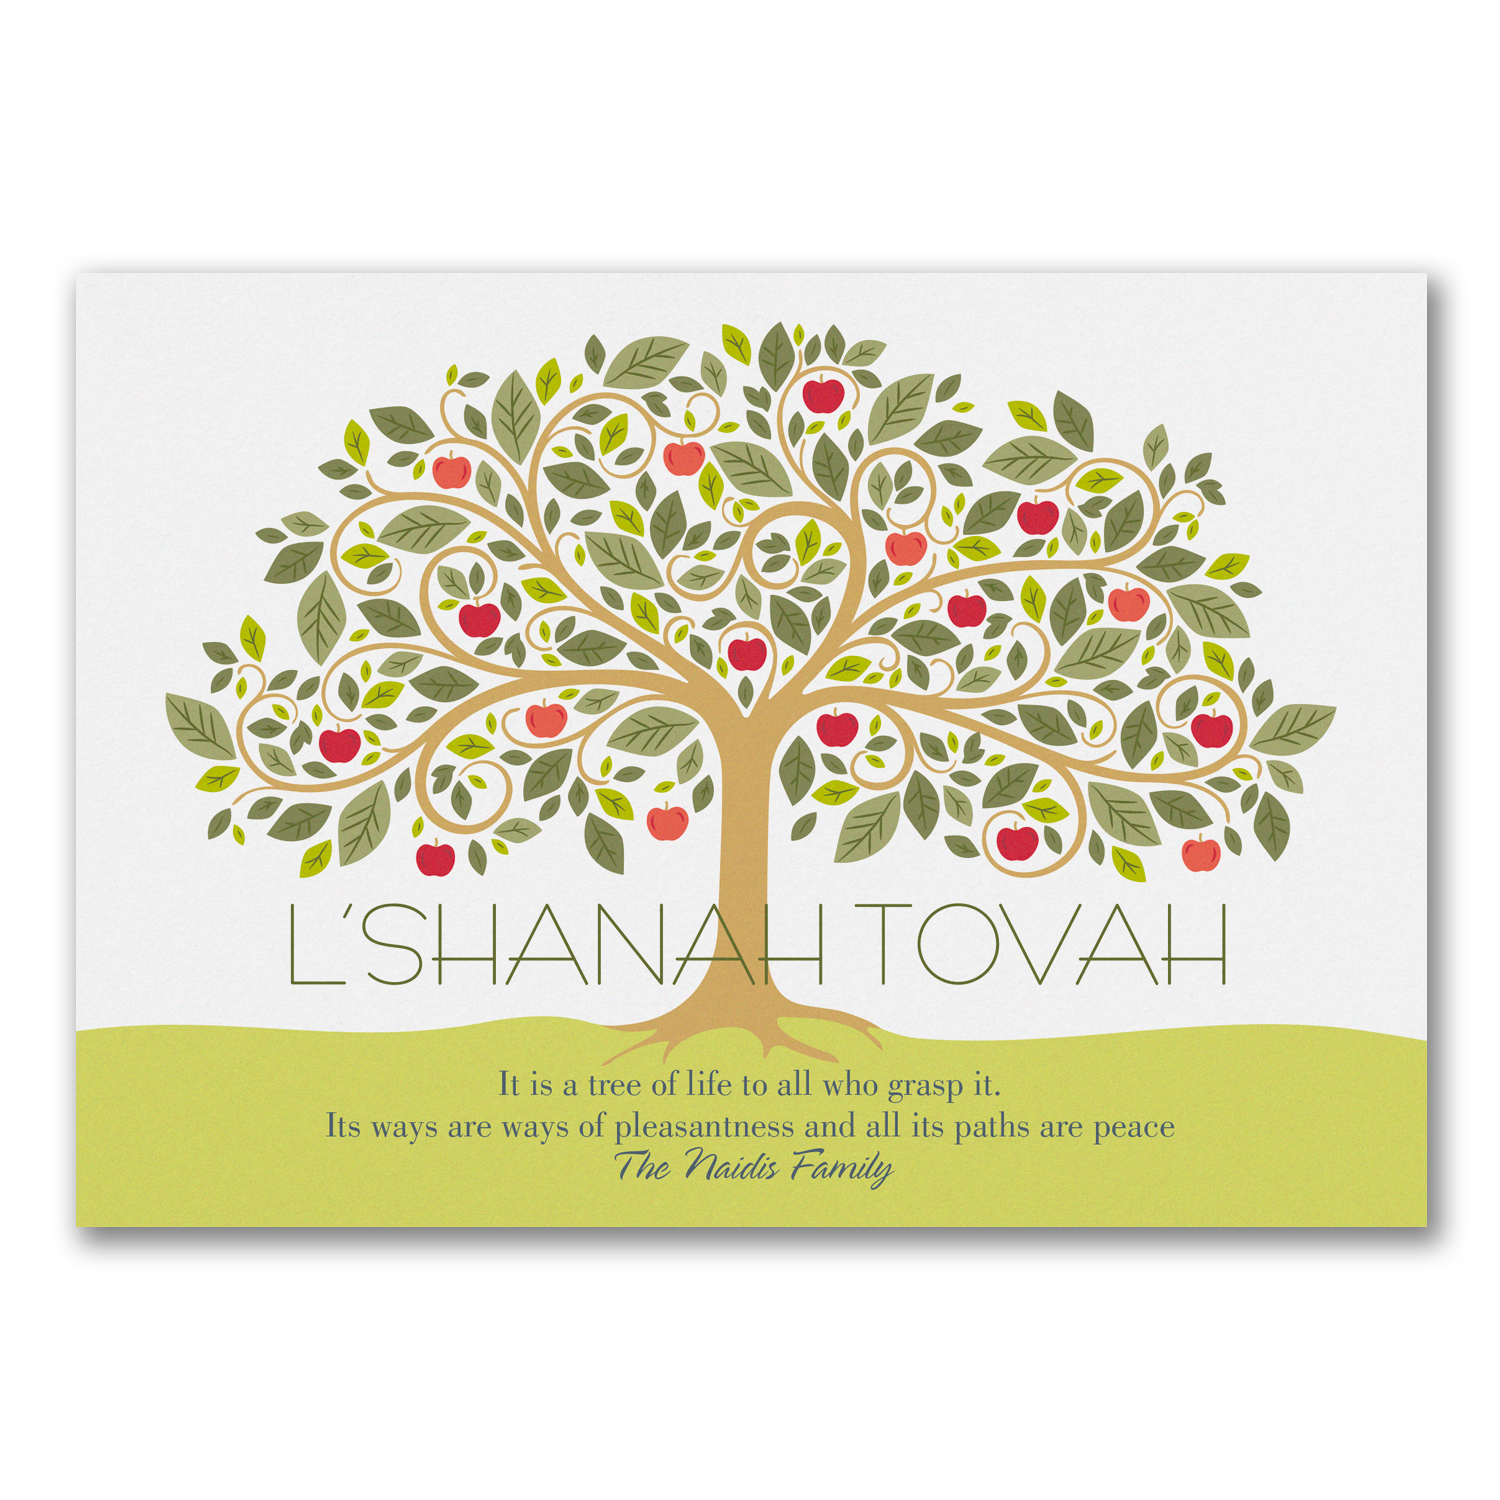 A Sweet New Year - Jewish New Year Card